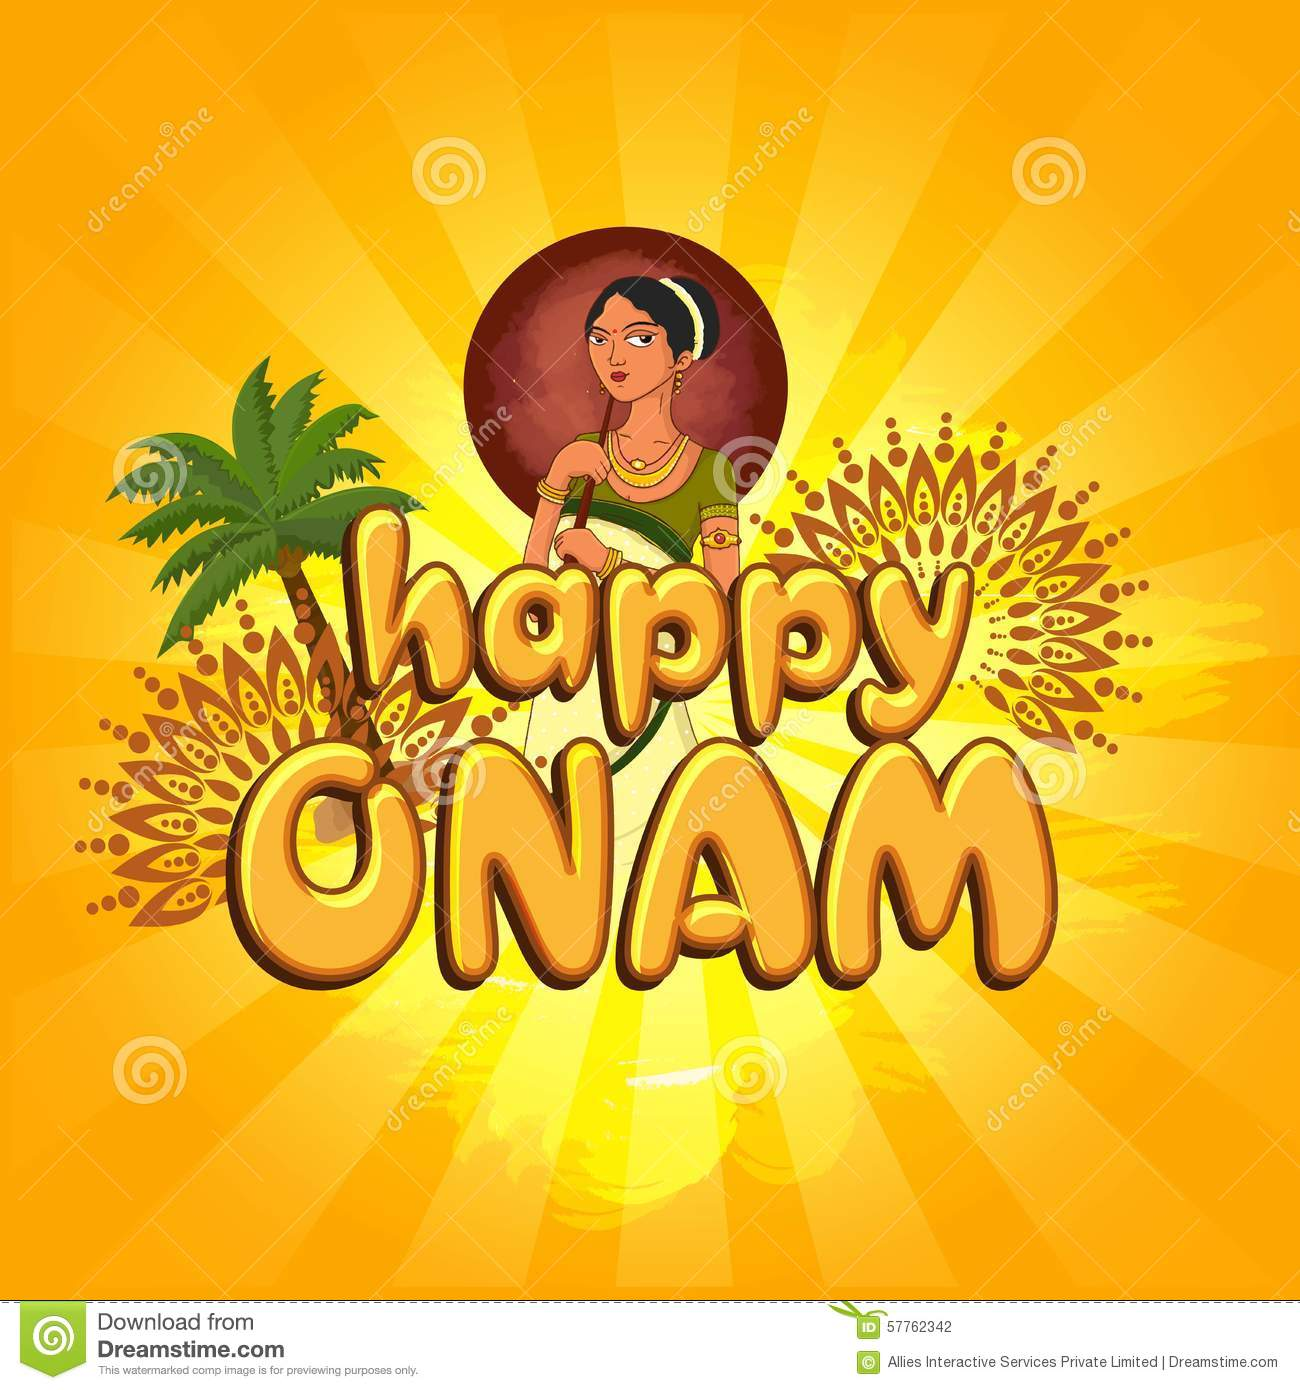 Greeting Card For Happy Onam Celebration Illustration 57762342